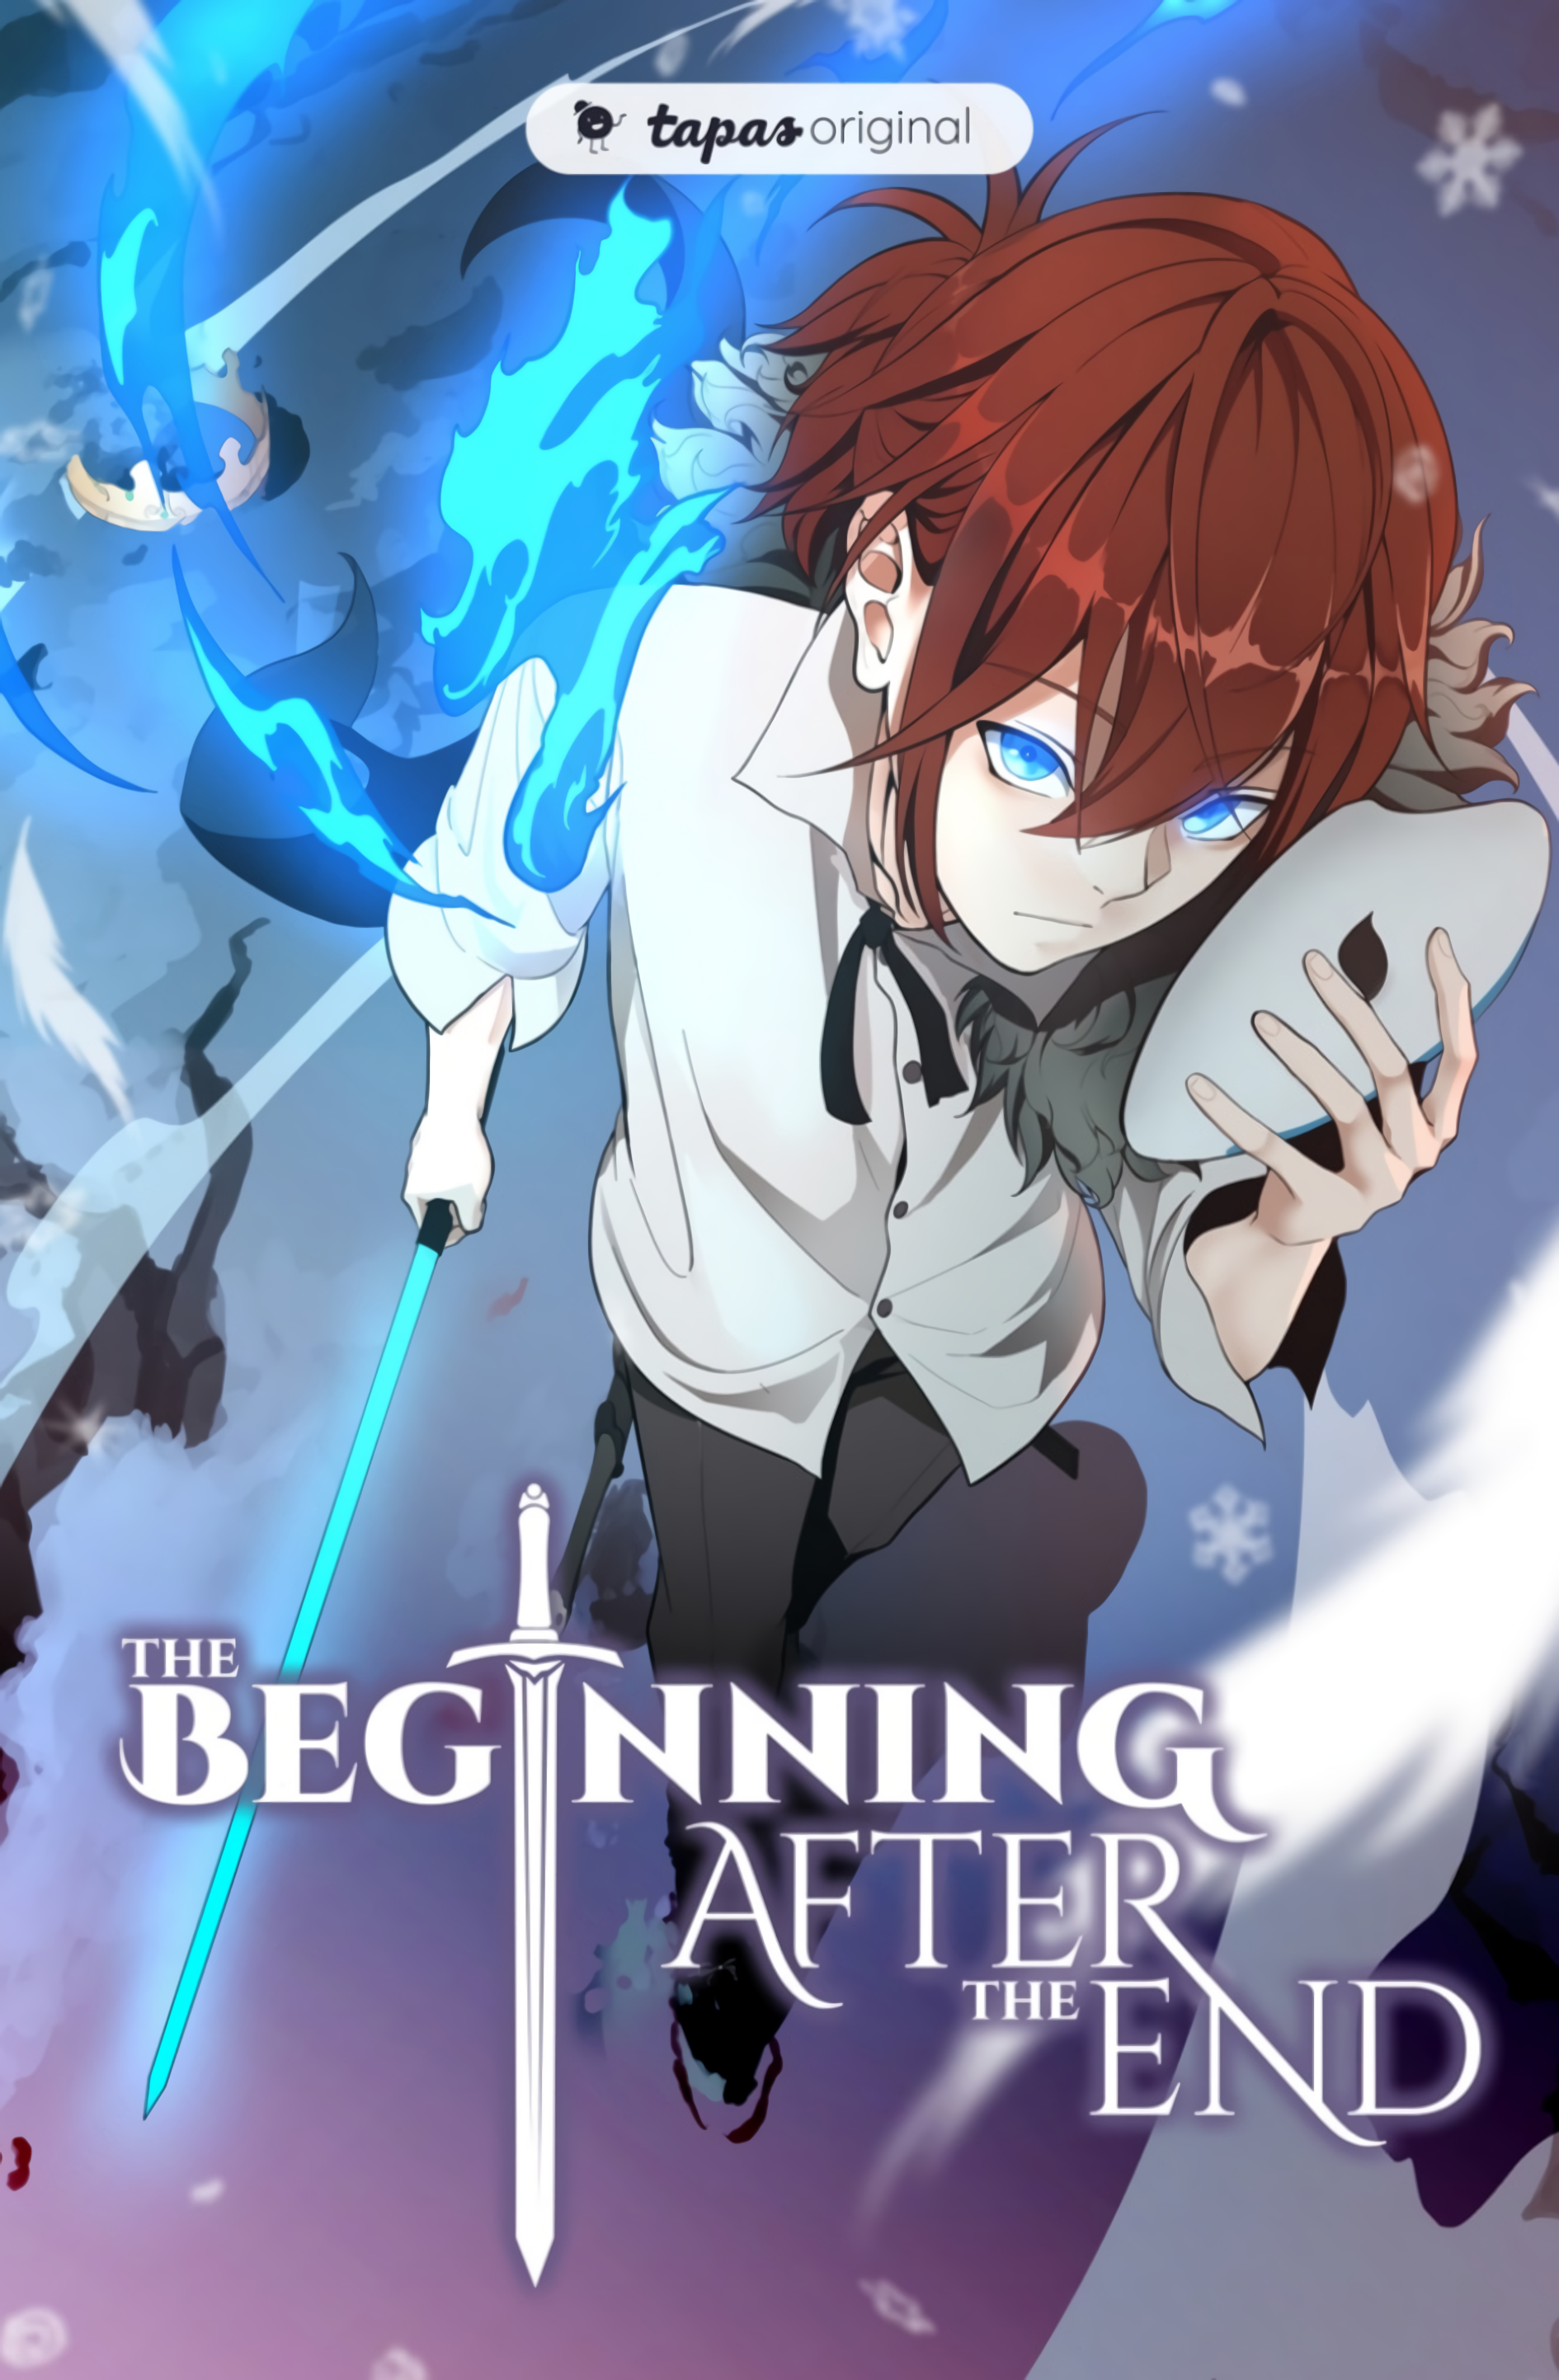 The Beginning After The End